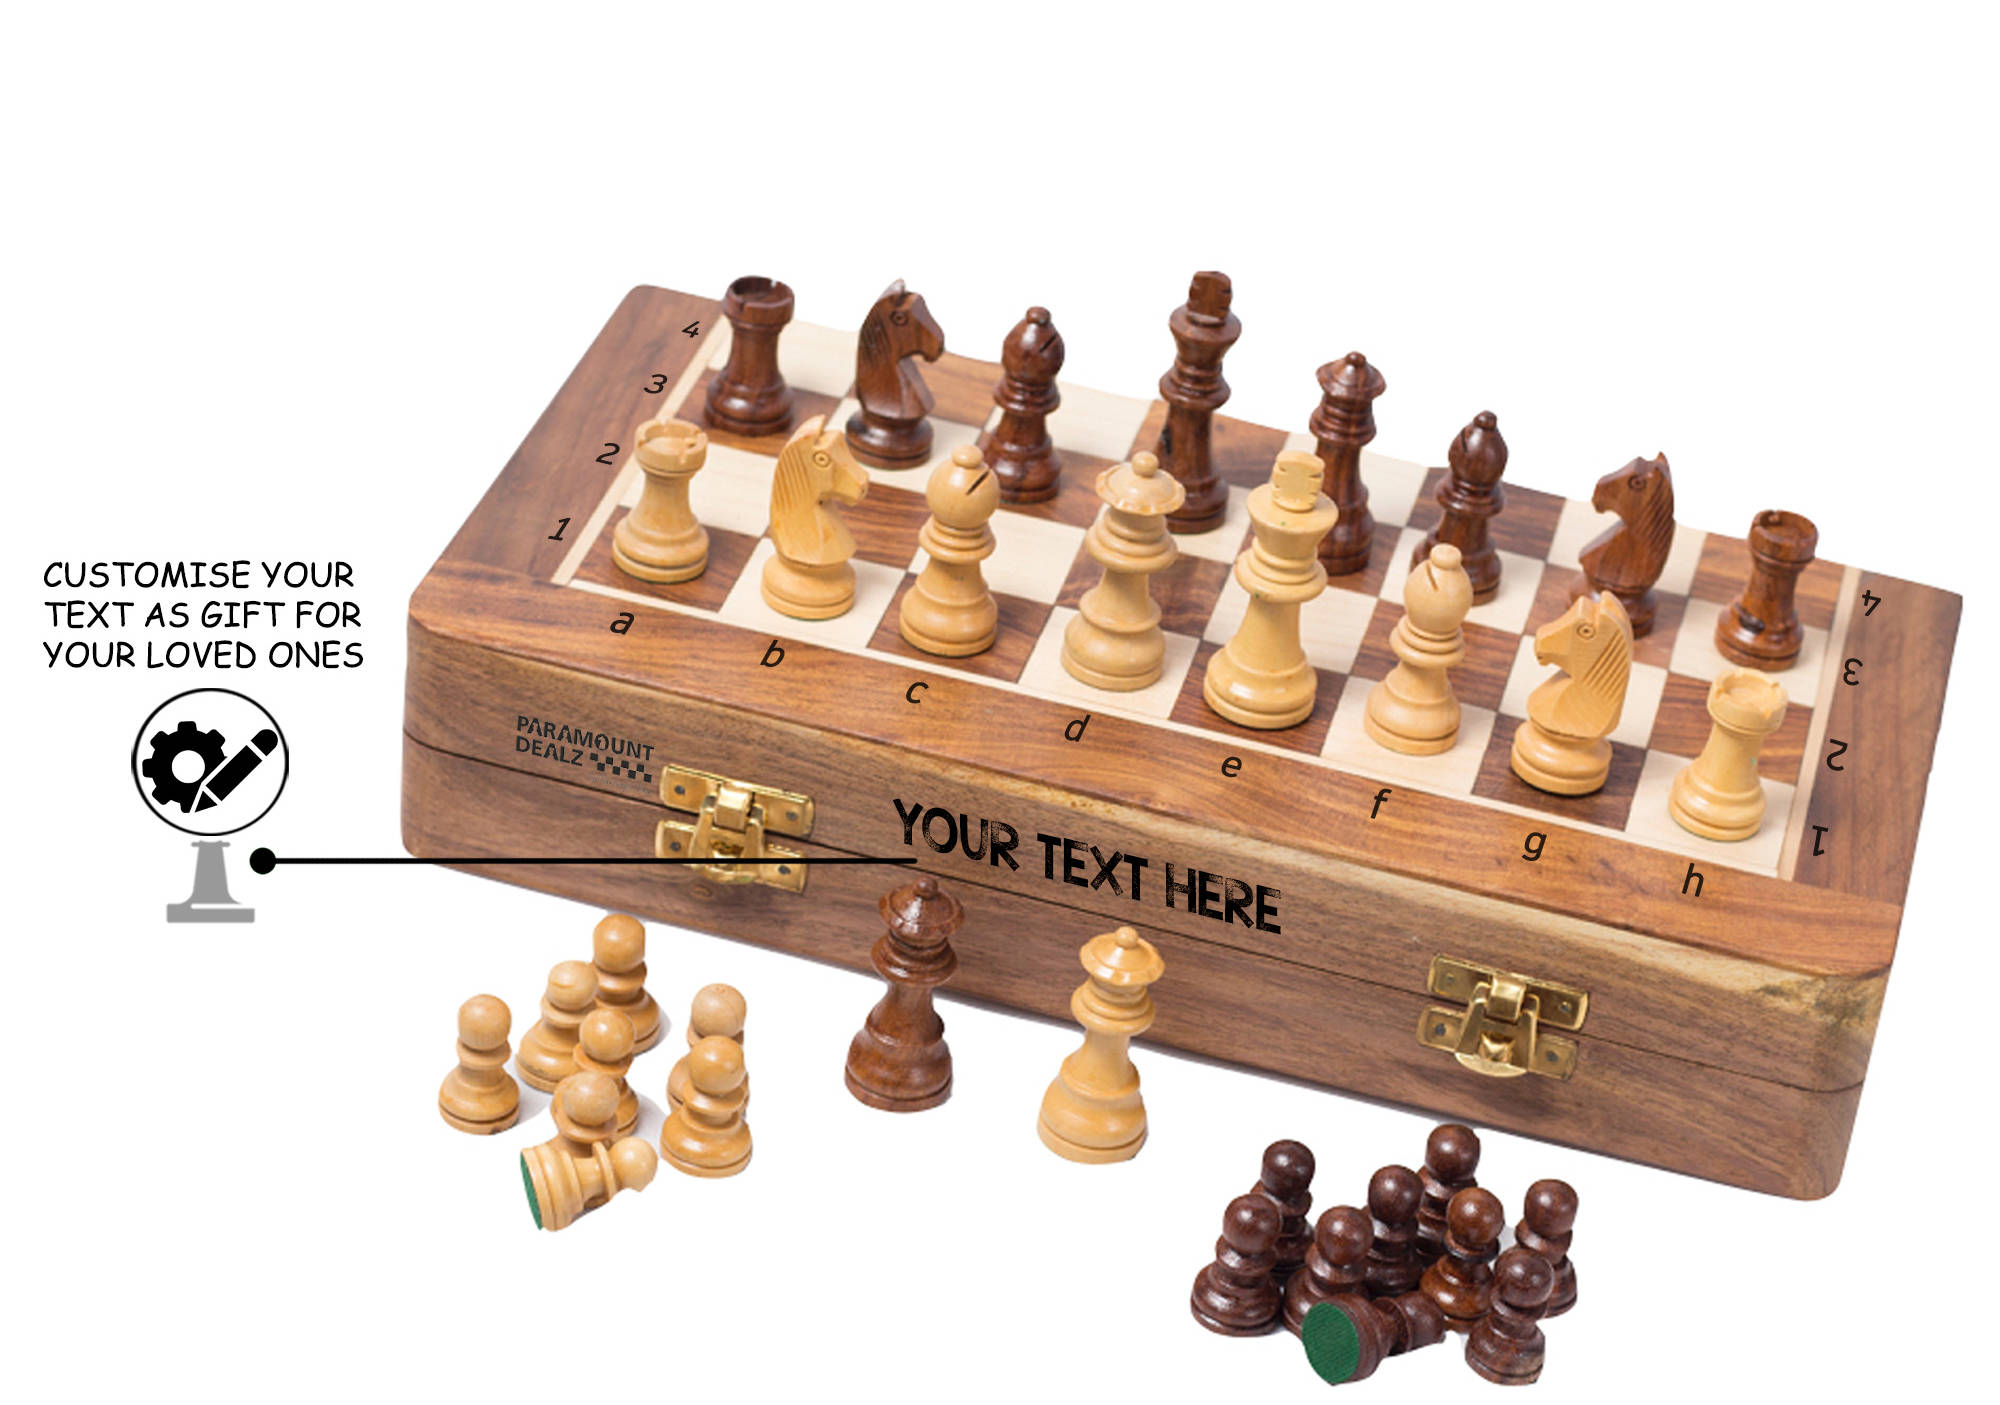 Personalized Gift for him - Wooden Chess Set + Coffee Mug